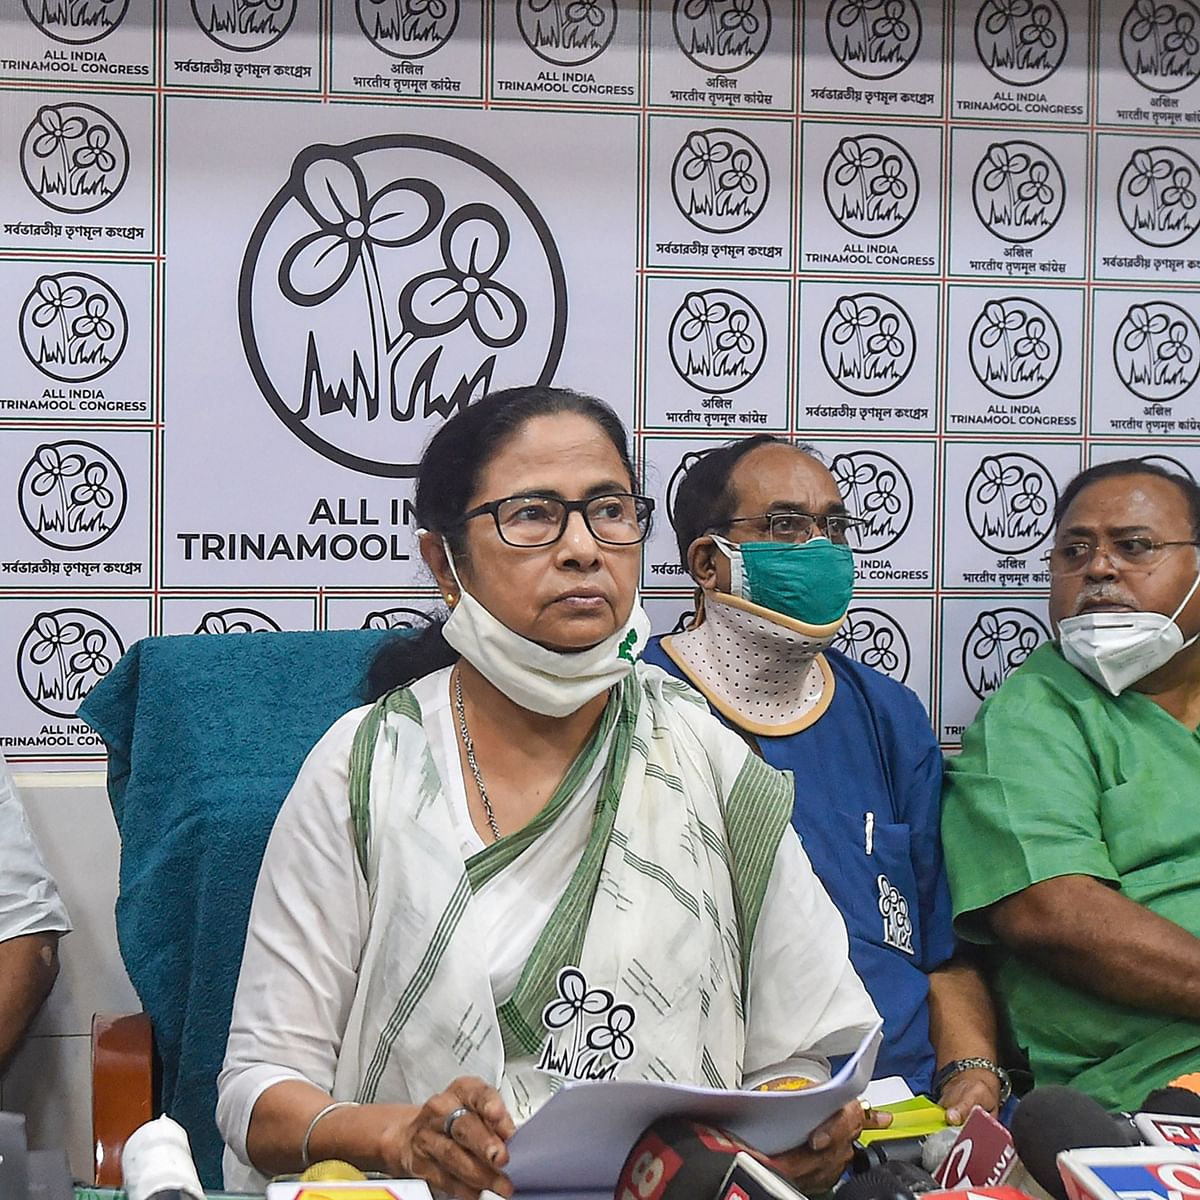 West Bengal Assembly polls 2021: Several sitting TMC MLAs cry foul despite Mamata Banerjee's assurance to form 'Vidhan Parishad'